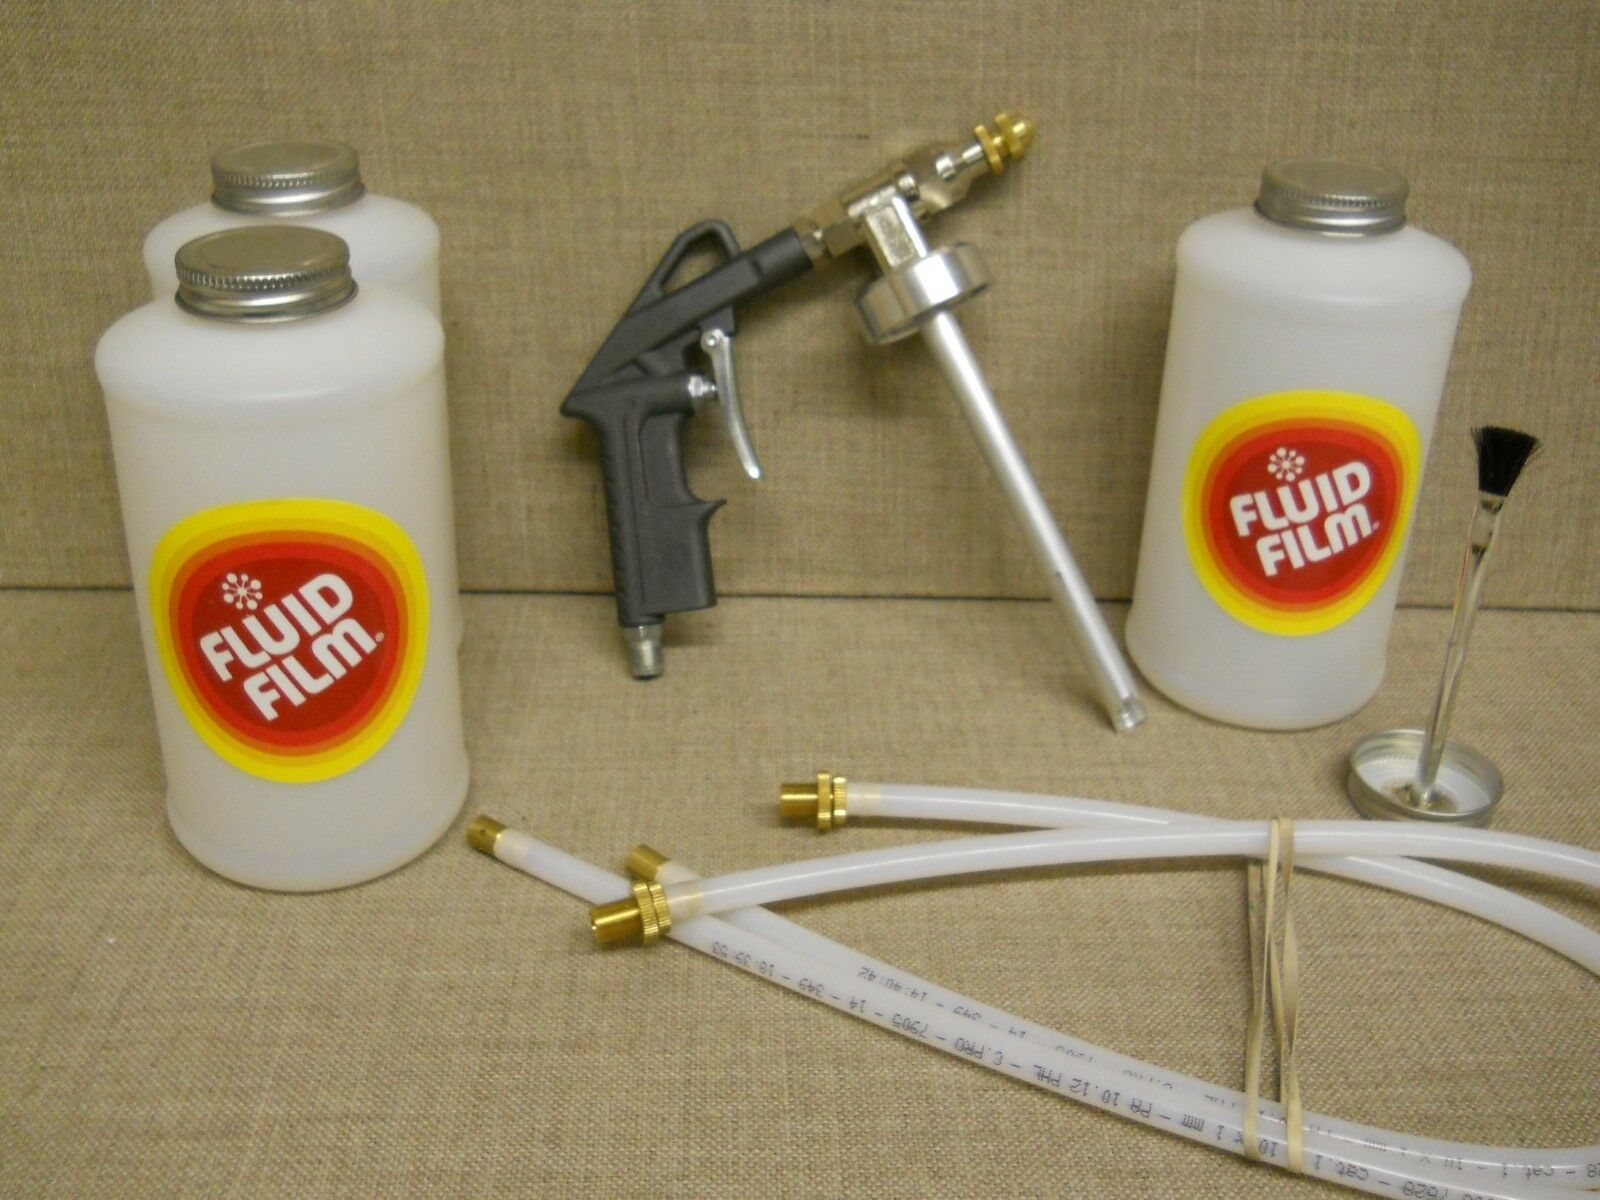 Fluid Film Quot Pro Quot Undercoating Spray Gun Kit With Wands And 100 Rust Plugs New For Sale In